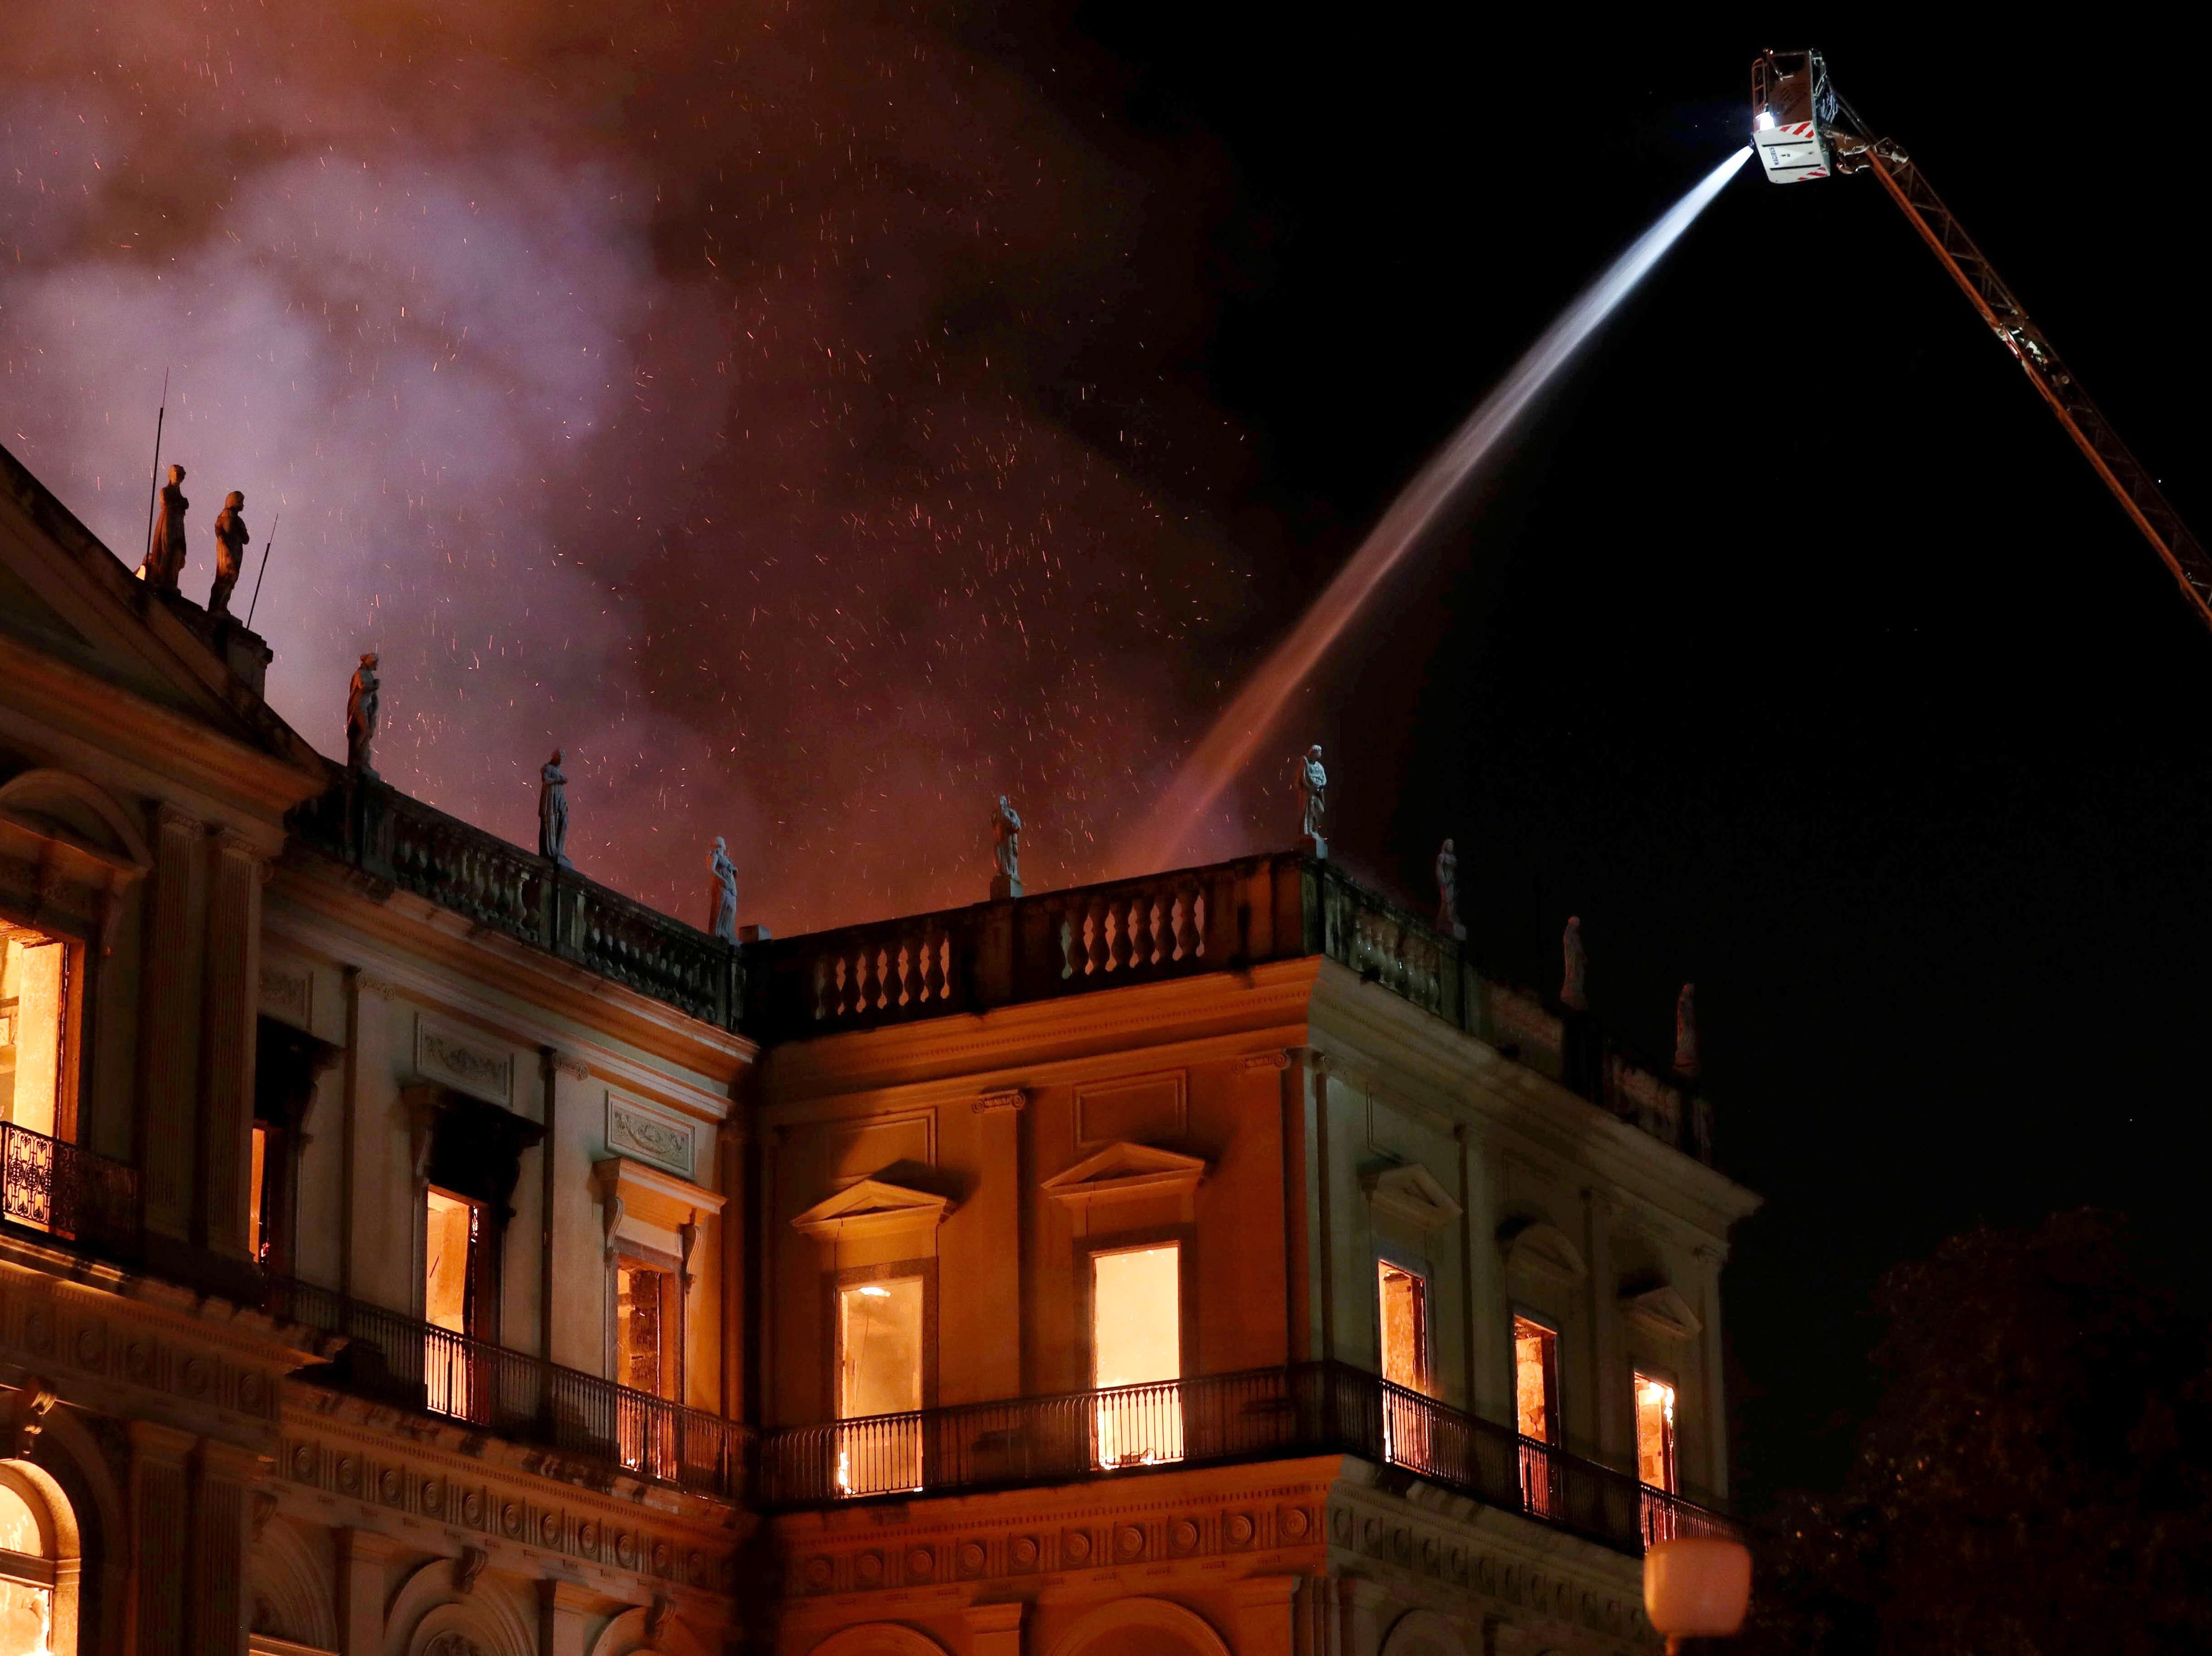 epaselect epa06993681 Firefighters work to contain a fire at the National Museum of Rio de Janeiro in Rio de Janeiro, Brazil, 02 September 2018. The museum houses some 20 million pieces that date back to the Brazilian imperial era. Authorities have said the cause of the fire is still unknown. No injuries have been reported.